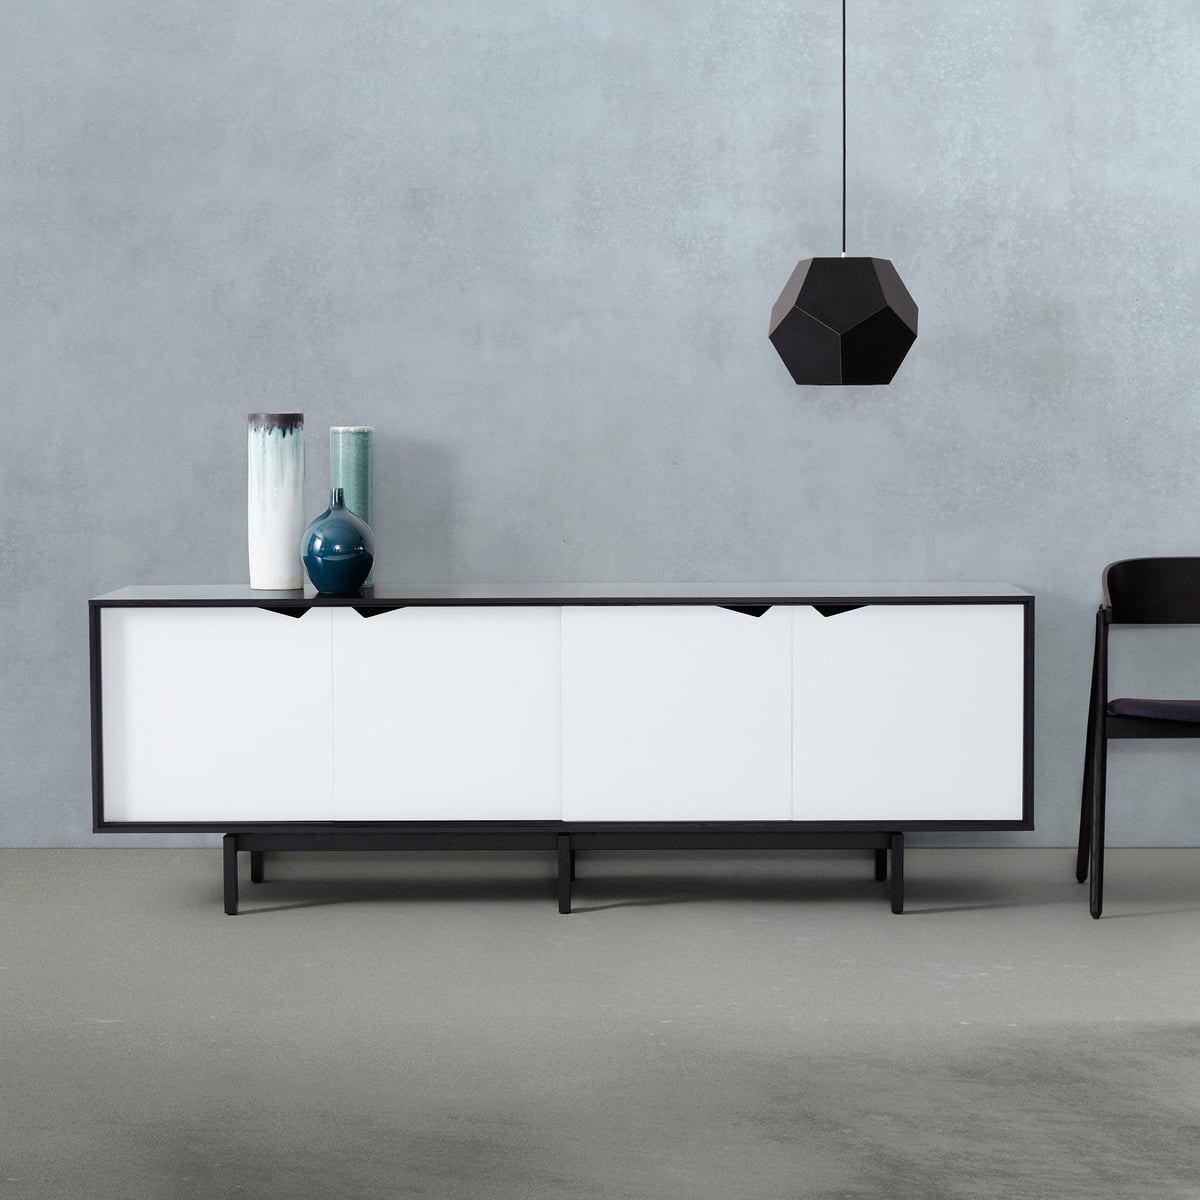 s1 sideboard einfarbig von andersen furniture. Black Bedroom Furniture Sets. Home Design Ideas